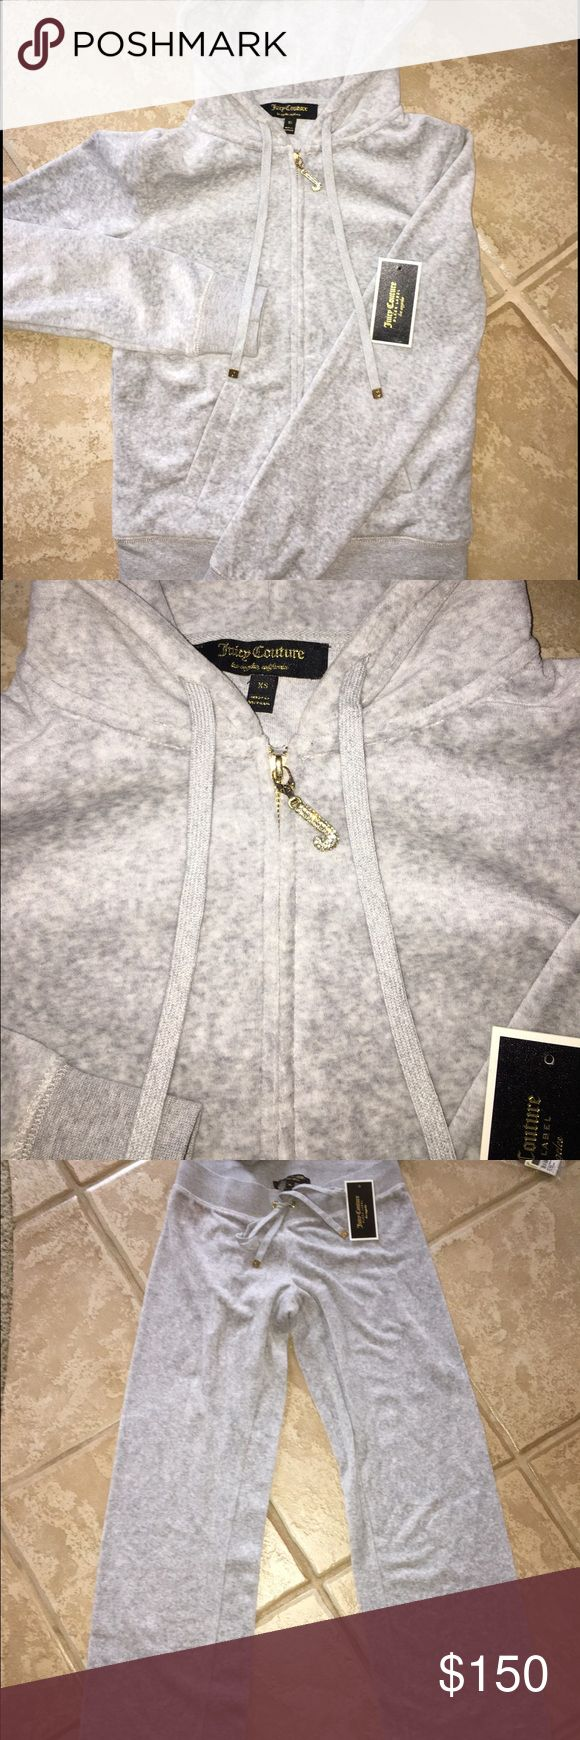 """Juicy Couture Black Label Velour Tracksuit NEVER WORN Juicy Couture Black Label Grey Velour Track Suit with Gold hardware and Rhinestone-Bling """"J"""". Tags were ripped off when I purchased this before trying it on (Oops!) however original tags will be included with purchase. *Price listed is for the jacket and pants as A SET however Jacket and Pants MAY be purchased separately for a LESSER PRICE* Message me for details!!! Juicy Couture Tops Sweatshirts & Hoodies"""